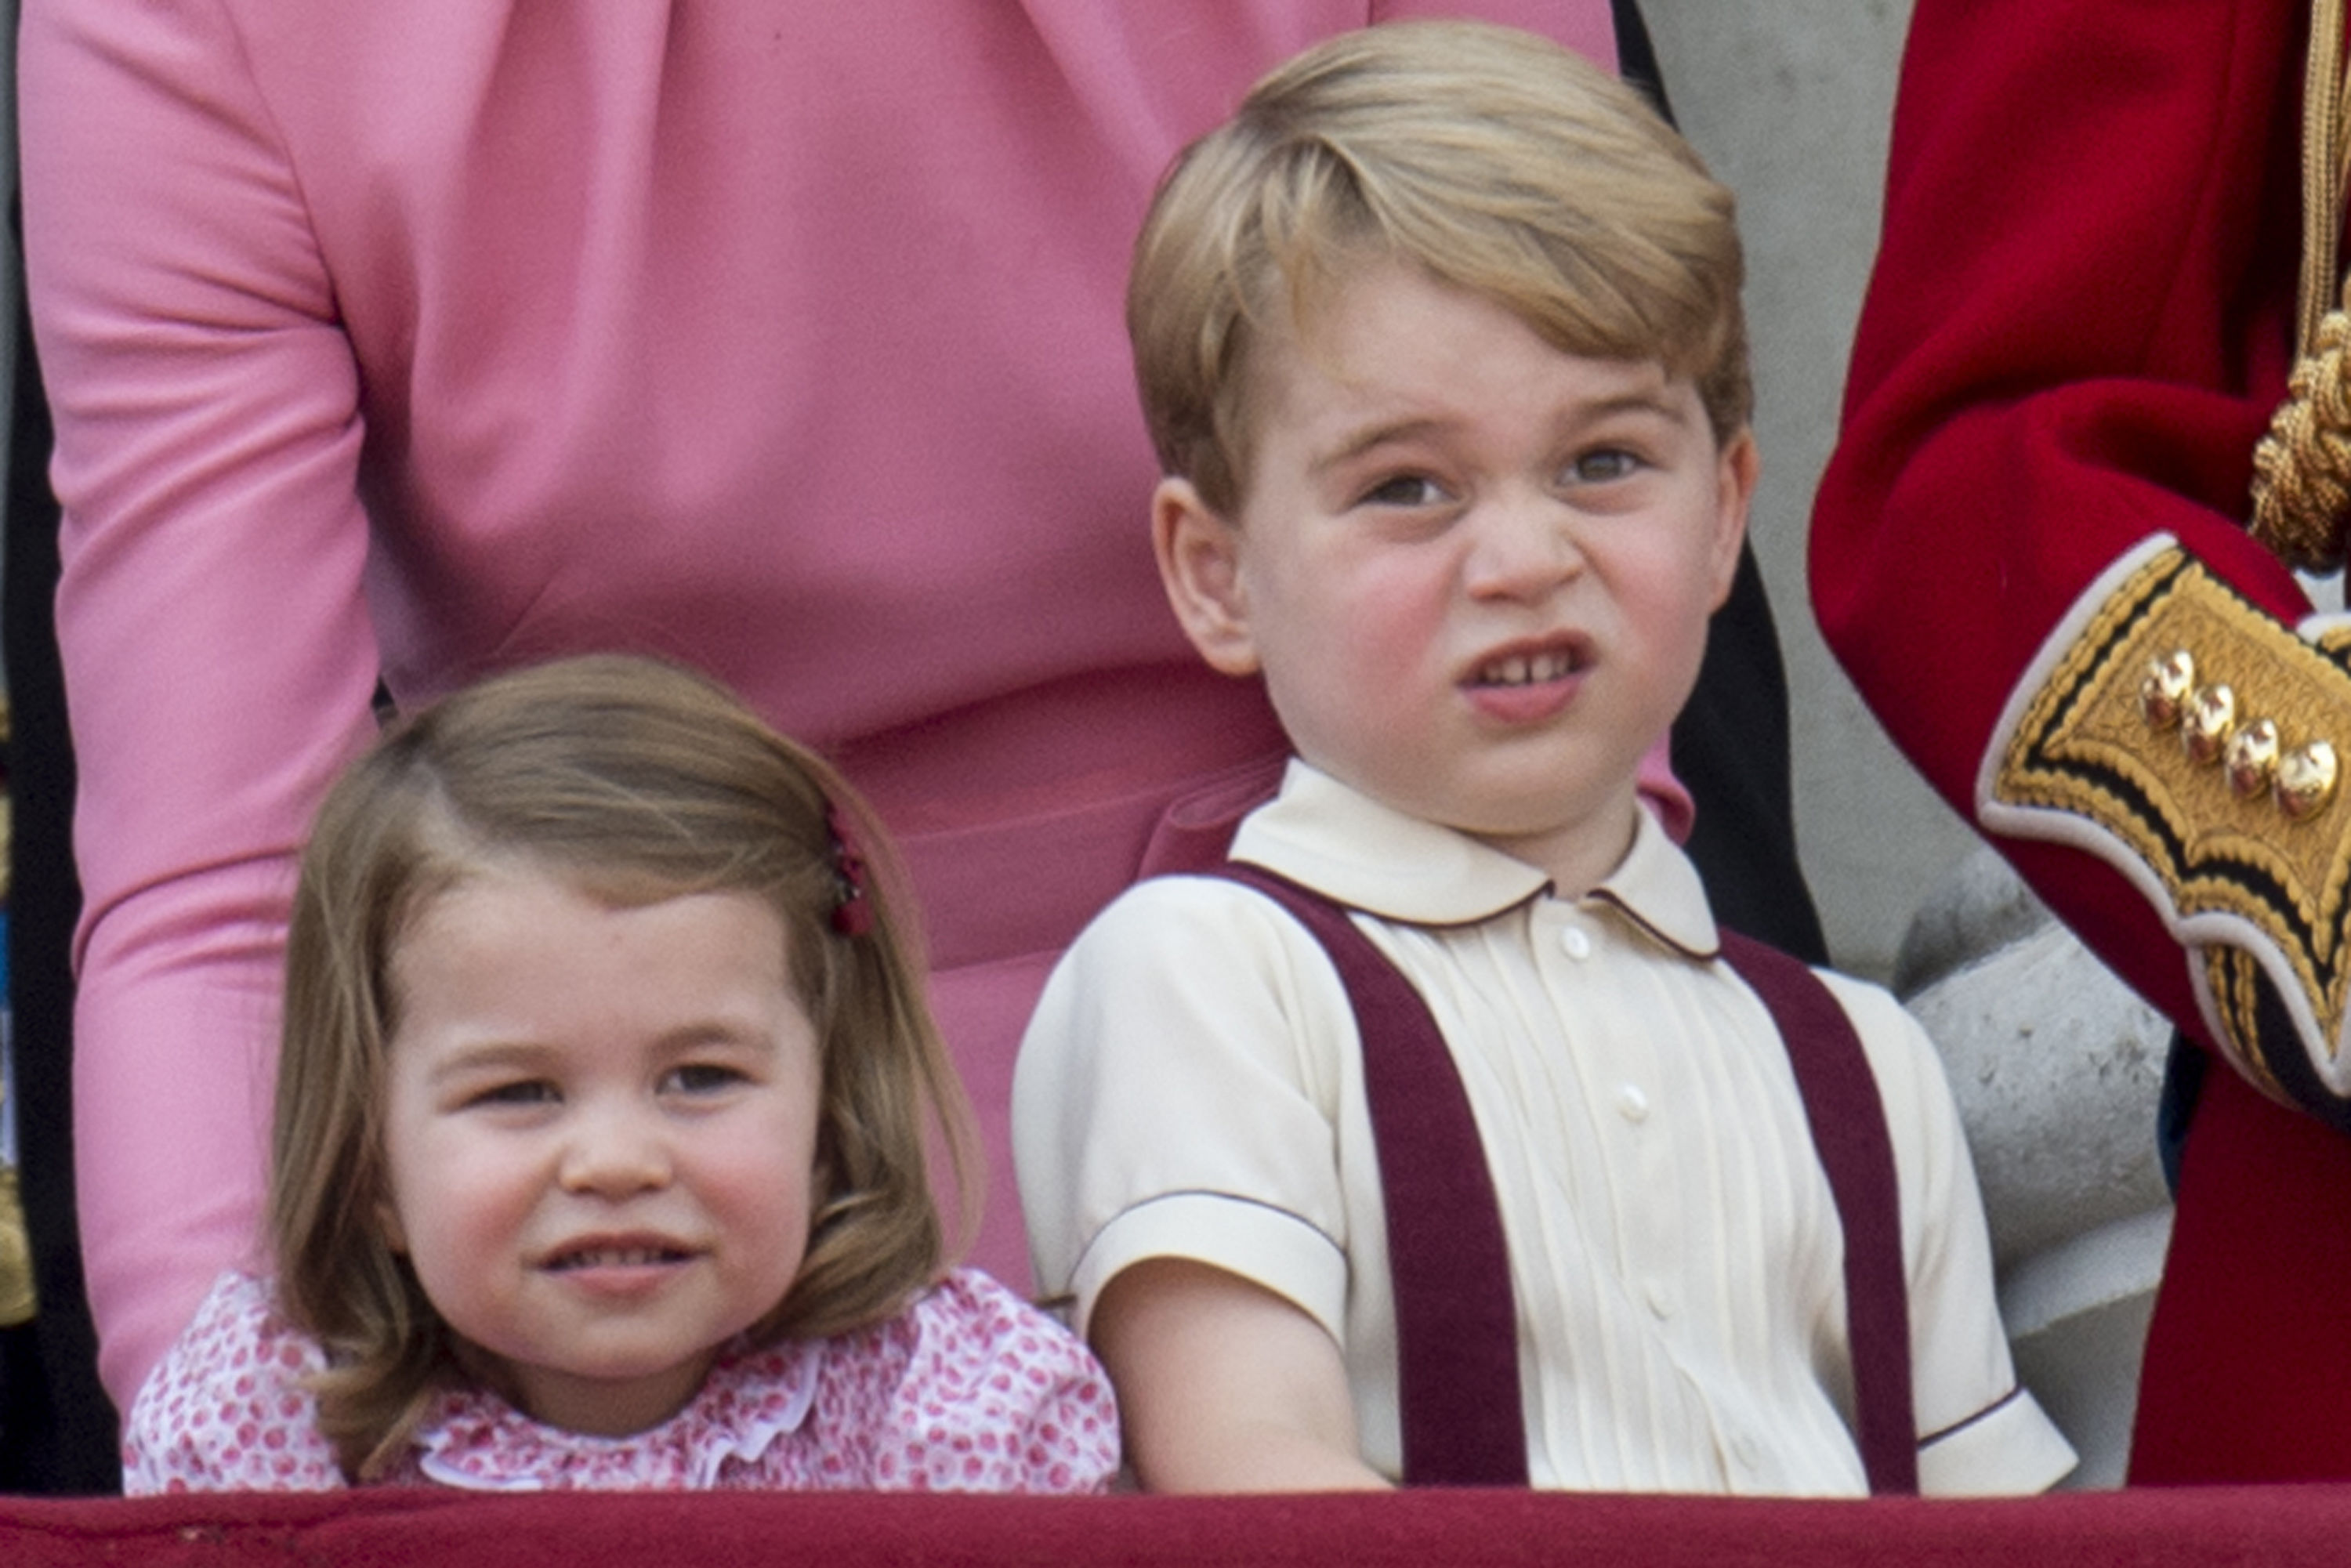 Mama Wants to Plan Prince George's Birthday Party